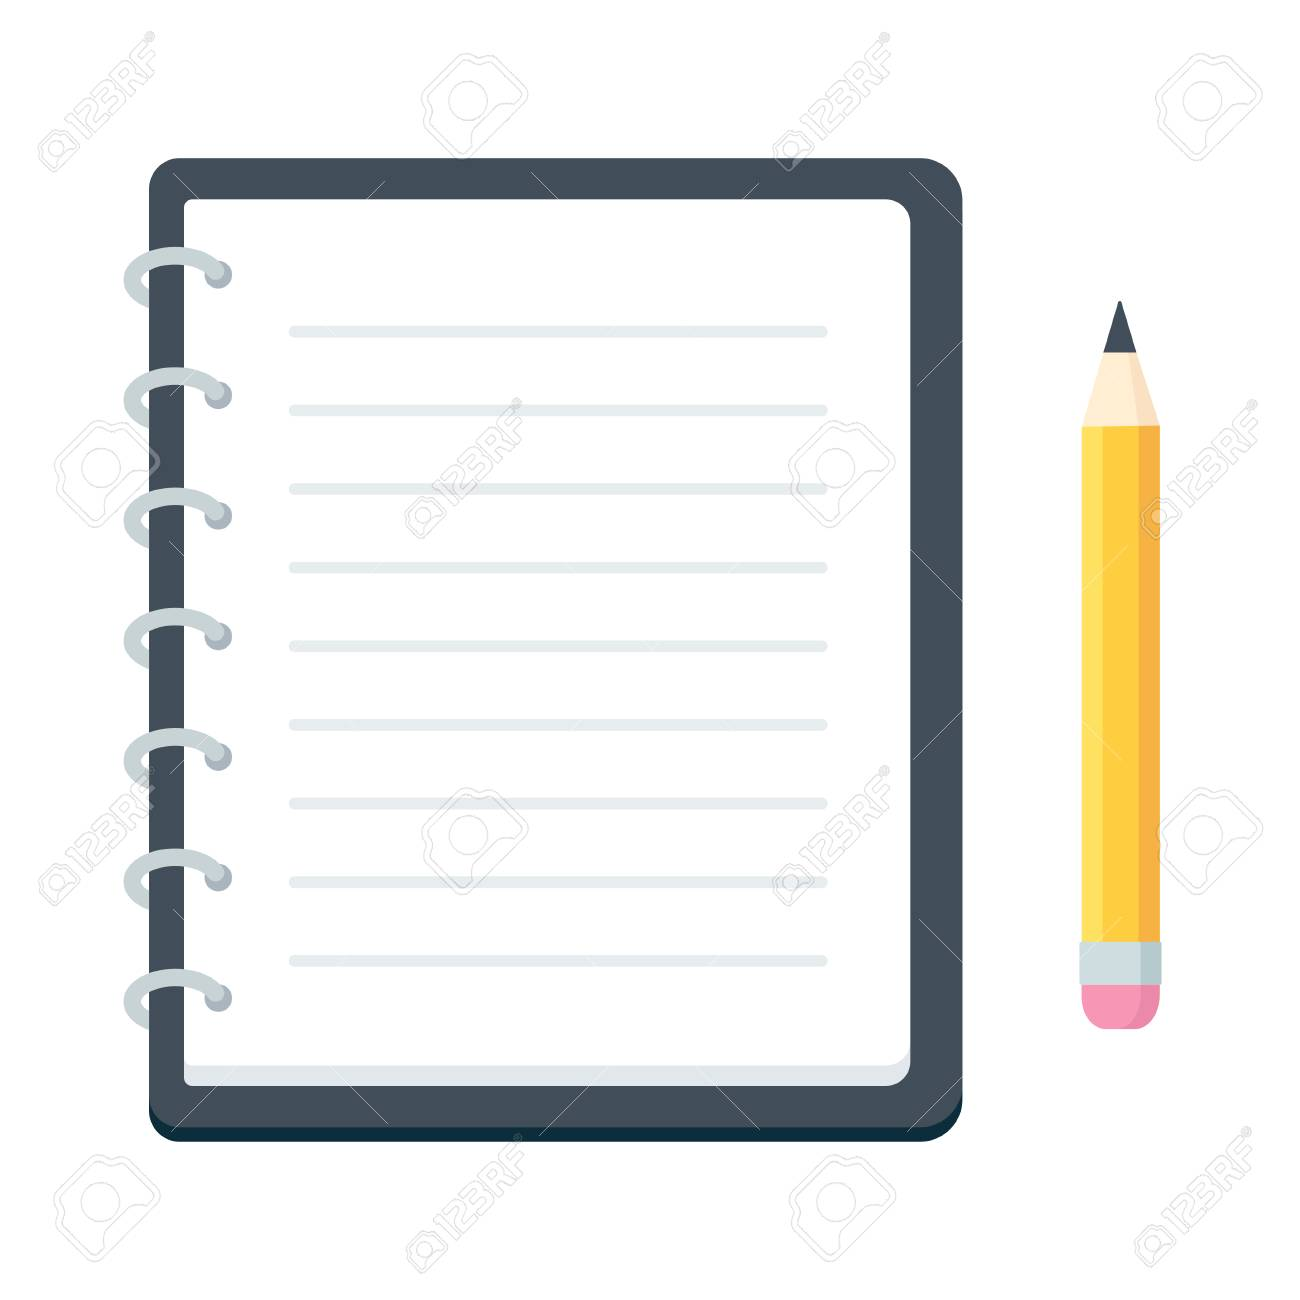 Blank spiral notebook and pencil, flat vector illustration. Simple notepad planner template. - 96203898